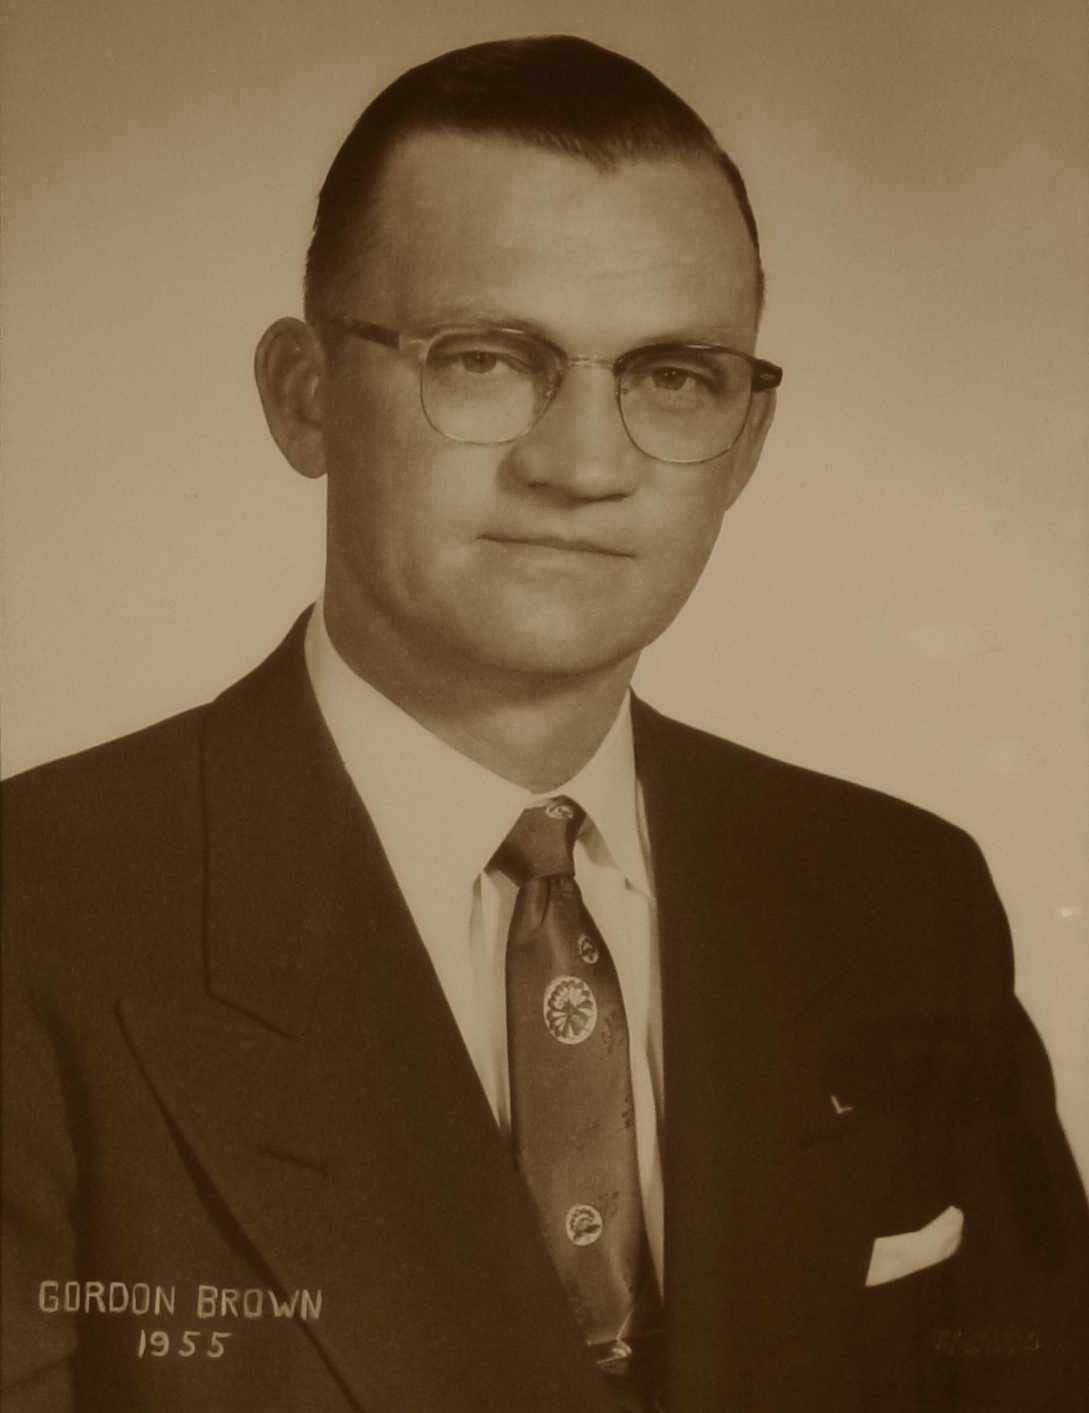 Gordon E. Brown, 1955